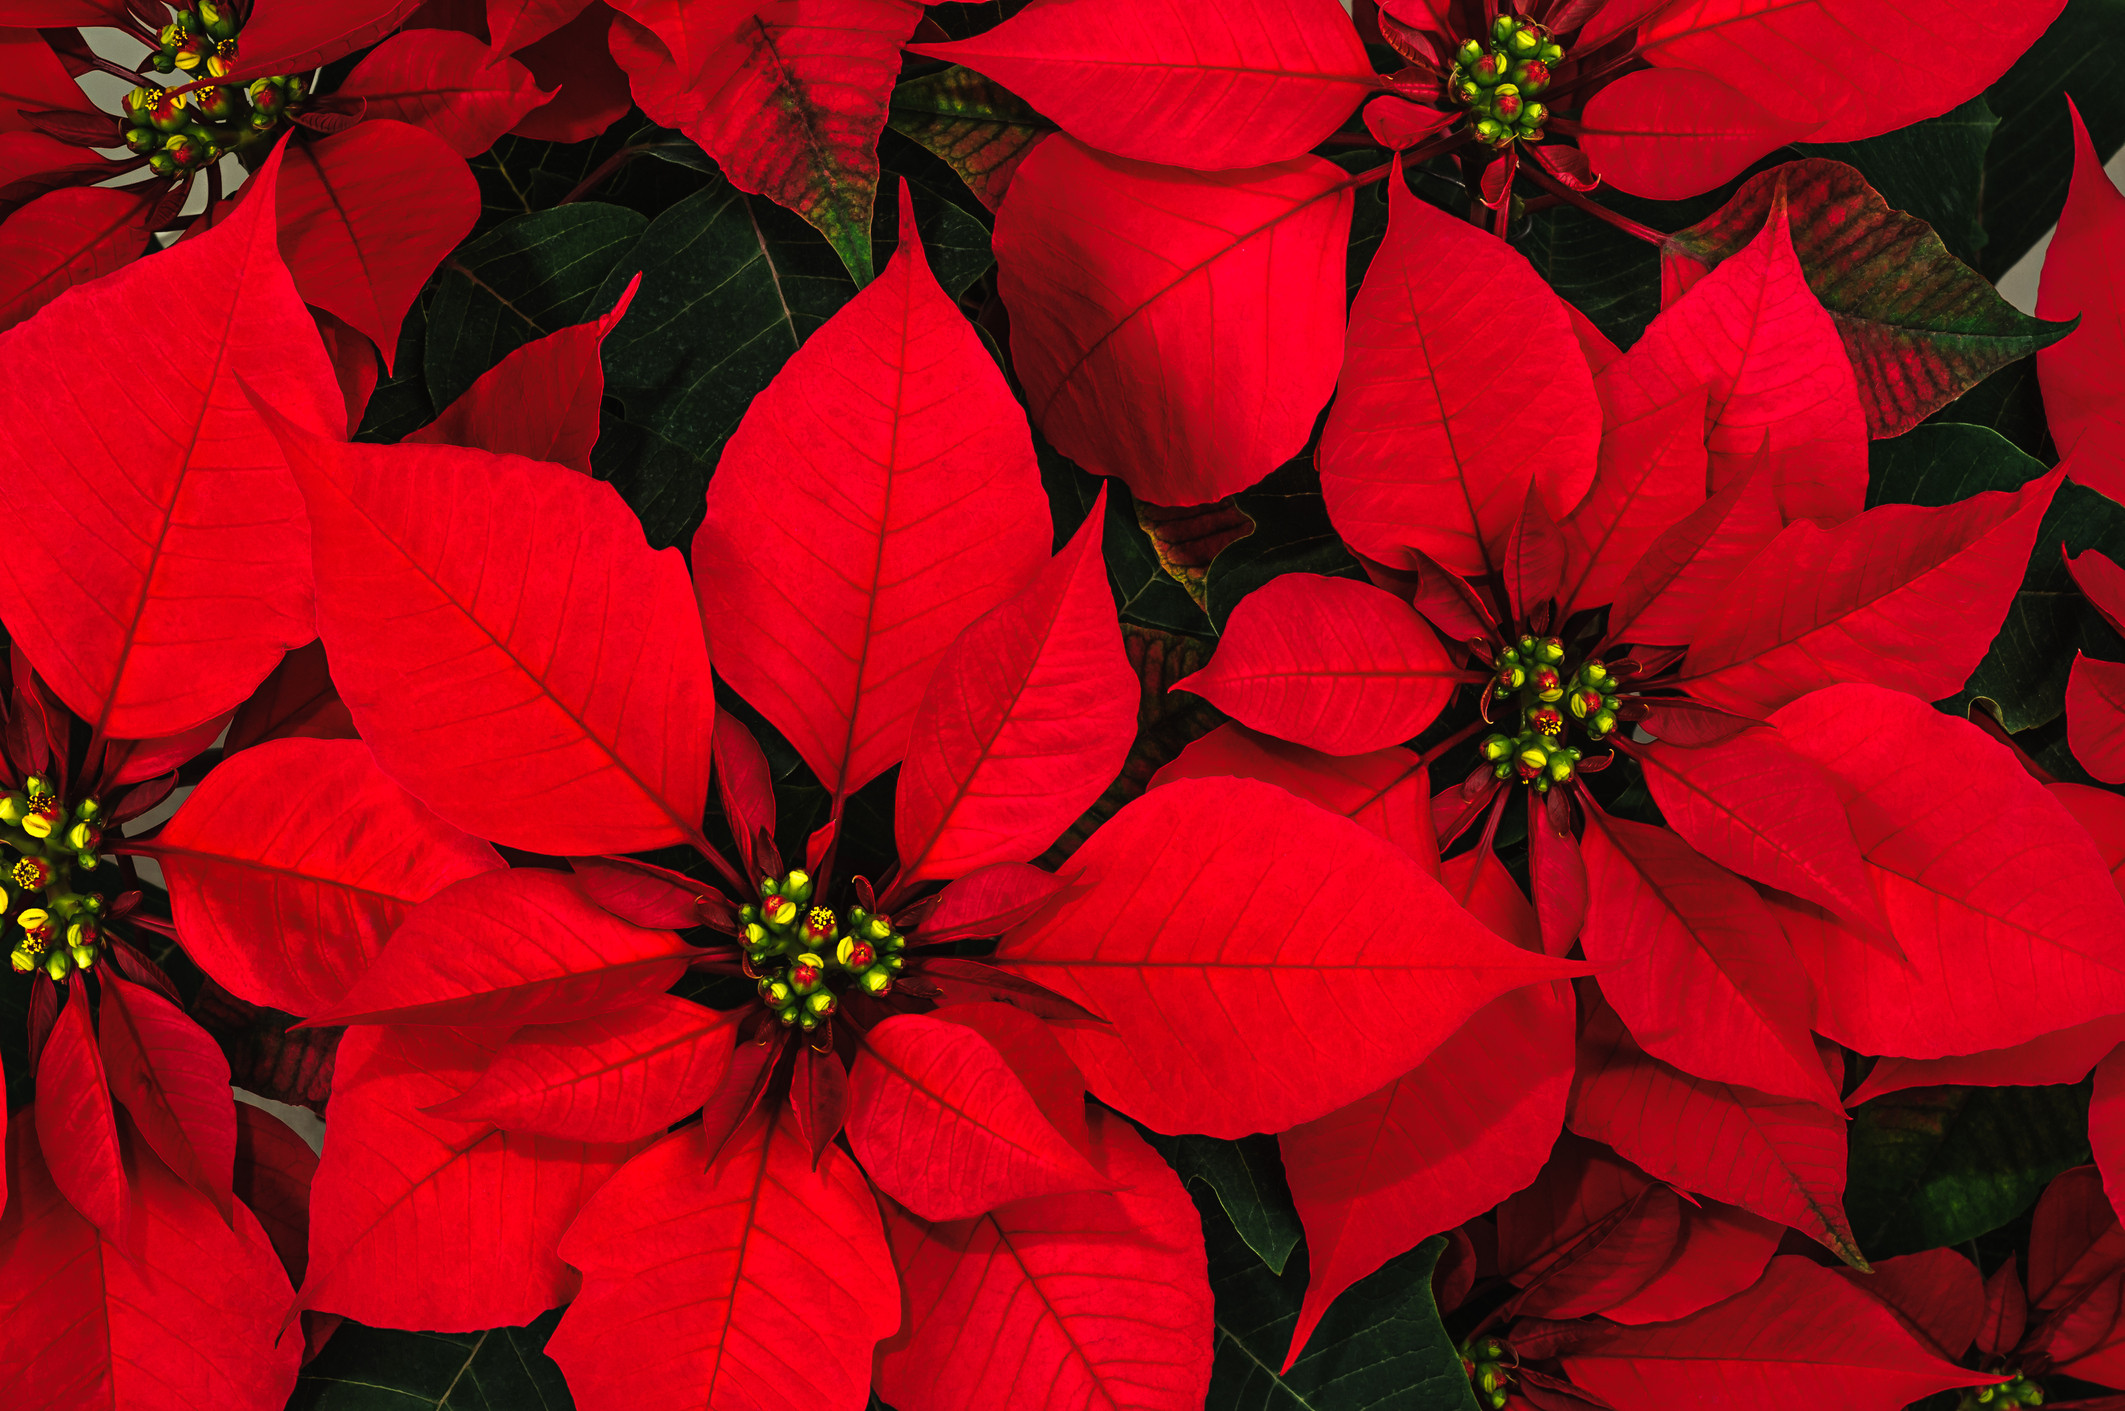 Christmas Flower Images  The Origins of the Poinsettia A Long Strange Tale